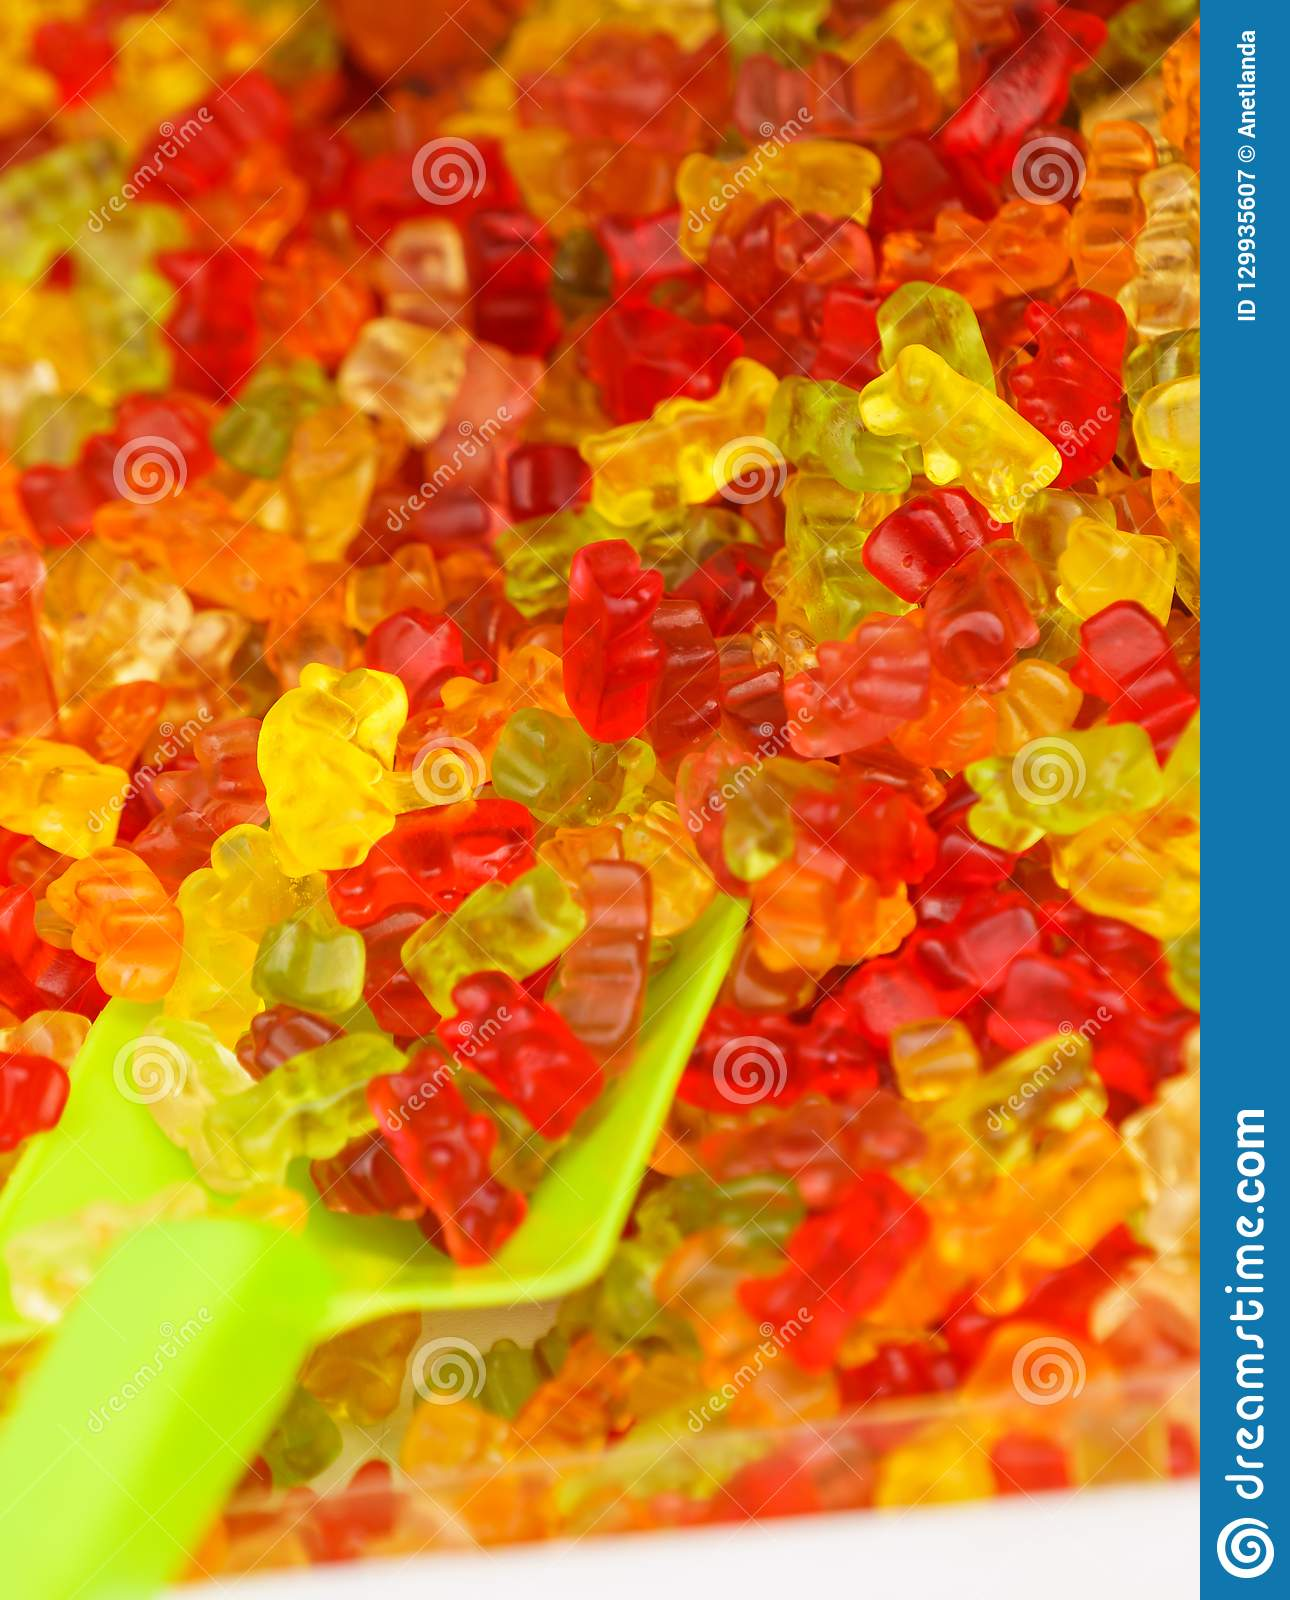 Close up of teddy bears jelly beans